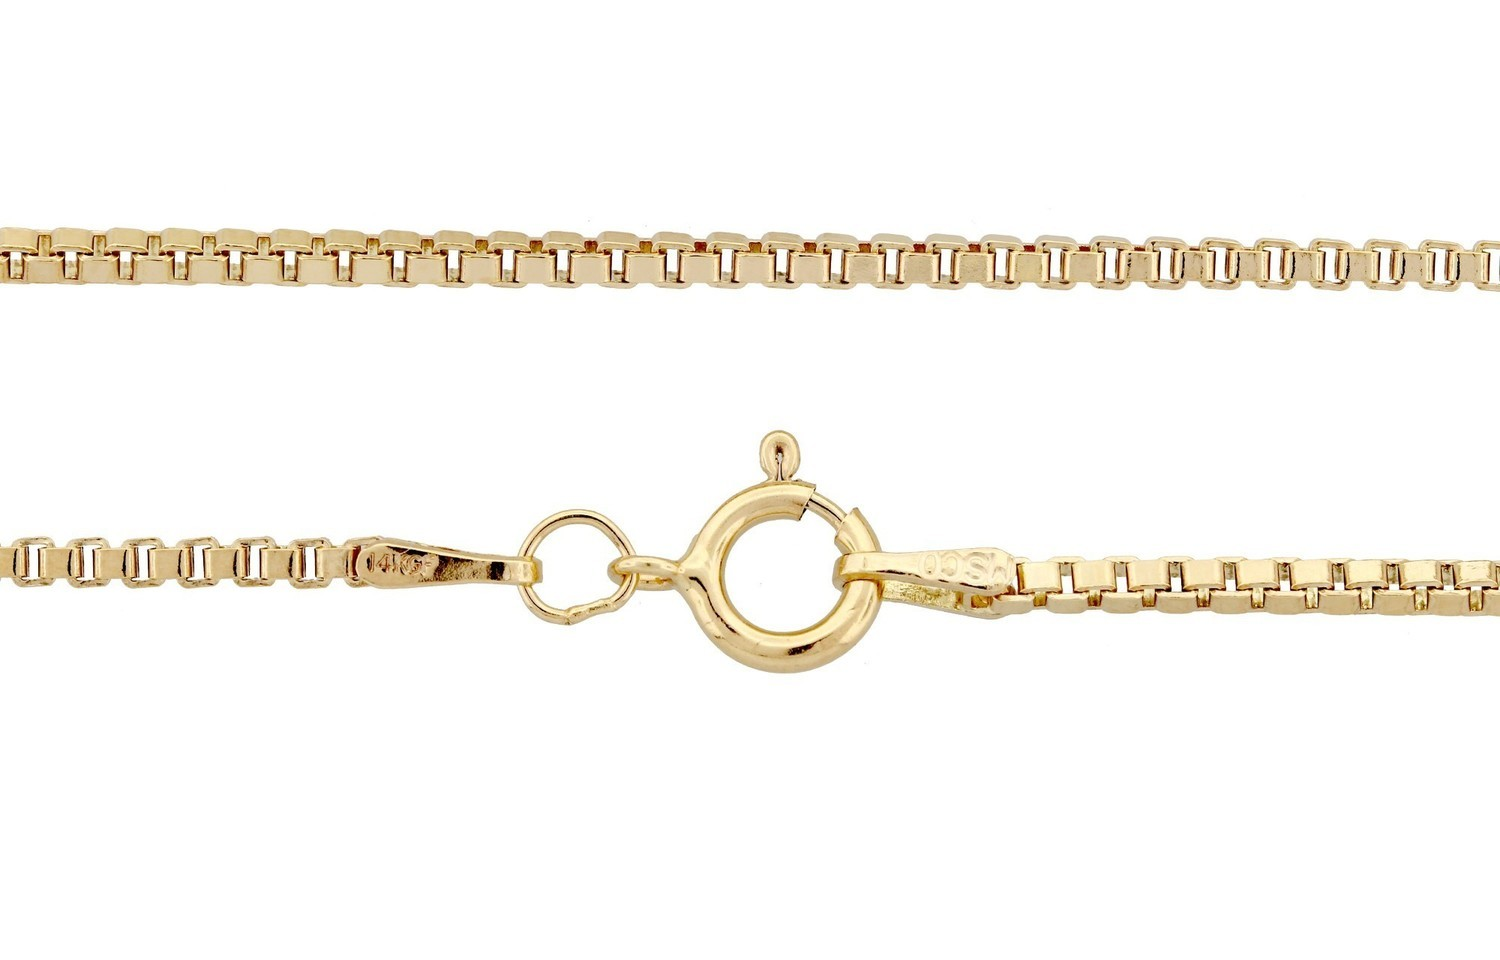 14k Gold Plated 316 Stainless Steel Box Chain